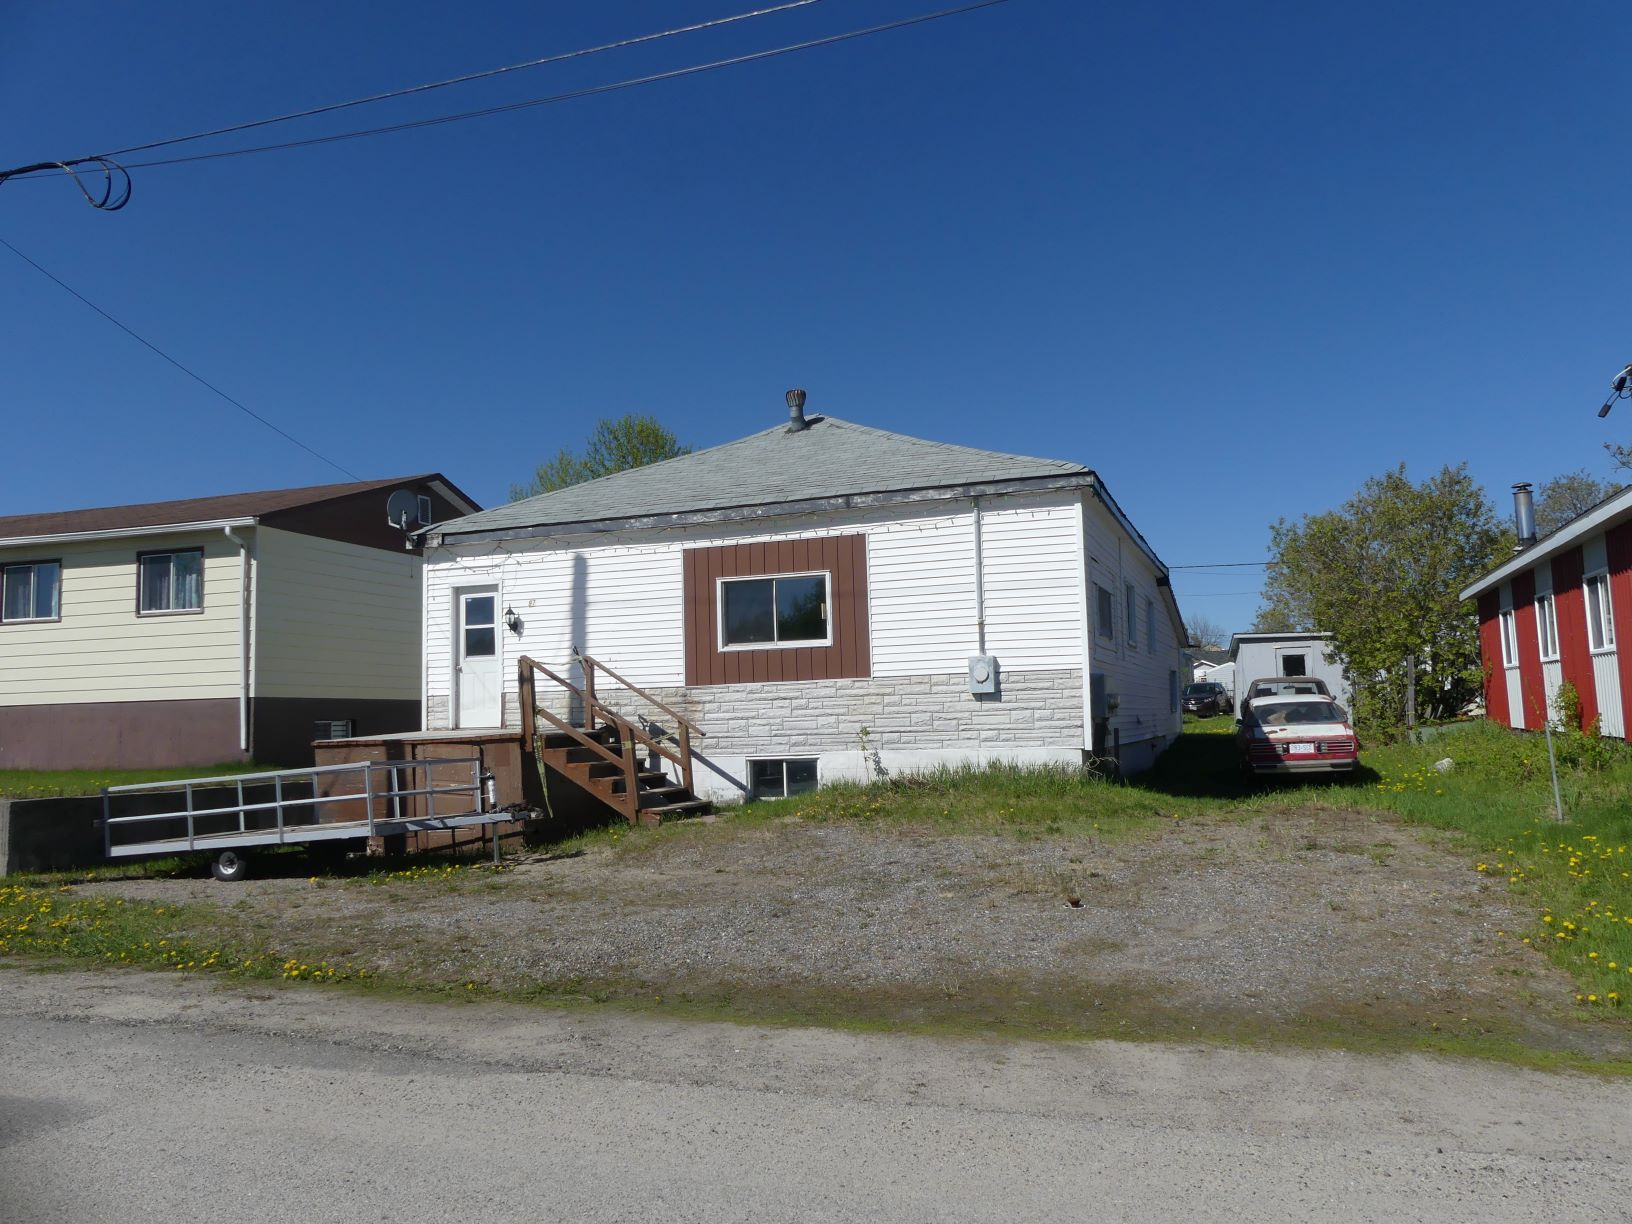 <h3>SOLD</h3><p>97 Aberdeen Street South, Chapleau, Ontario</p>